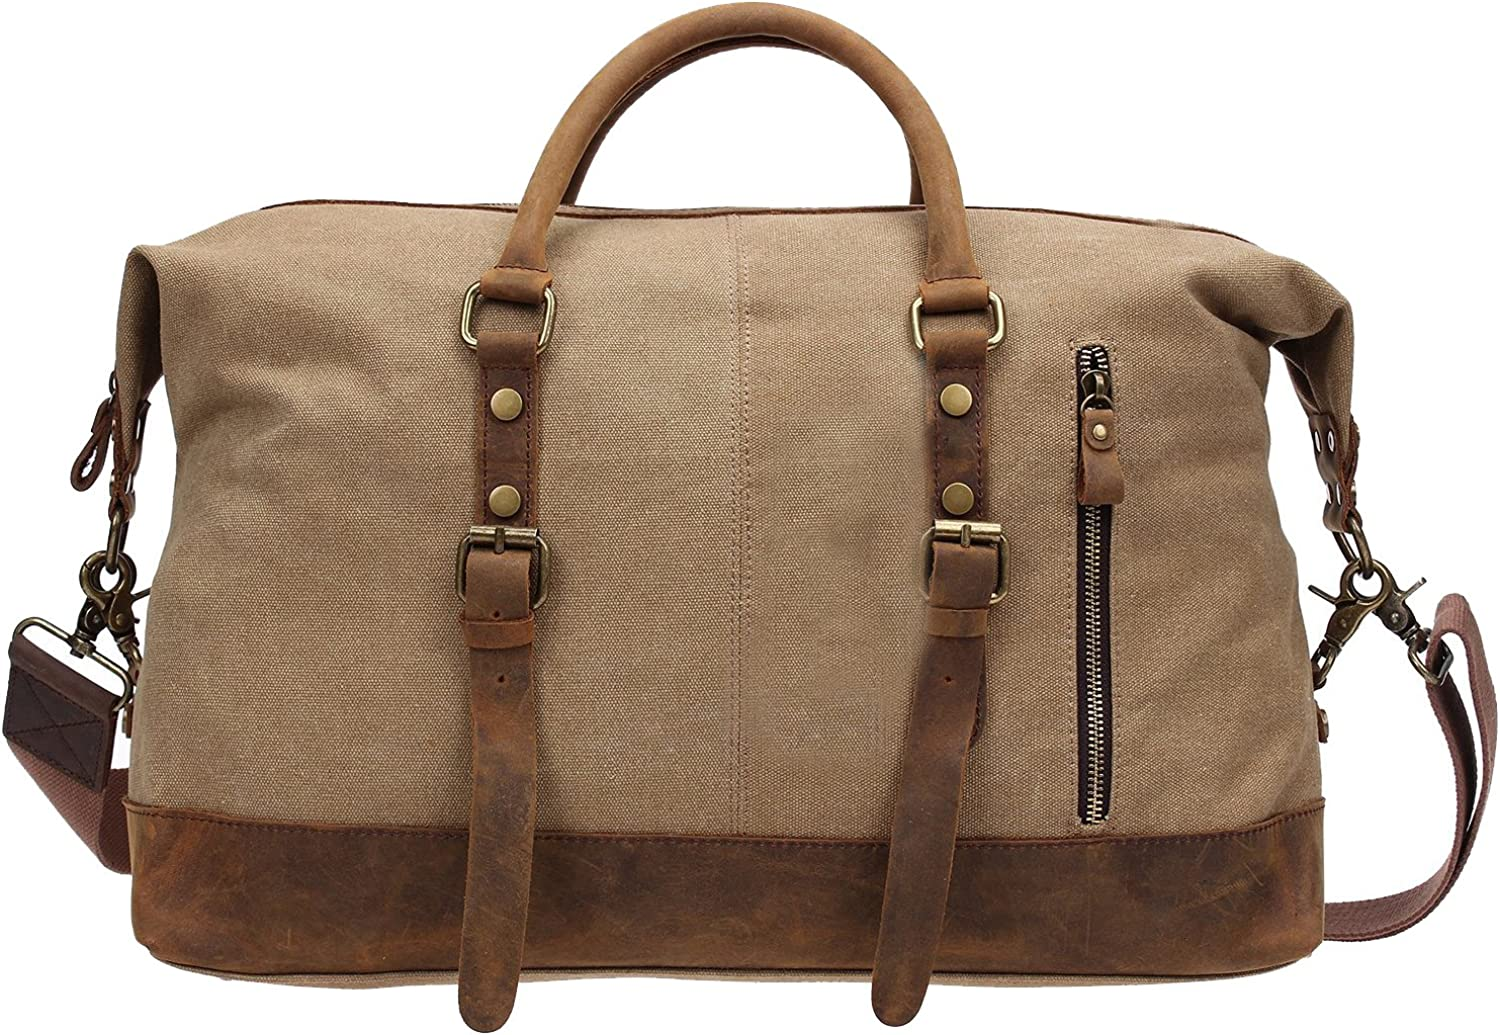 Luggage, Berchirly Canvas Duffle Bag Weekend Travel Luggage Sports Duffel Bags Unisex